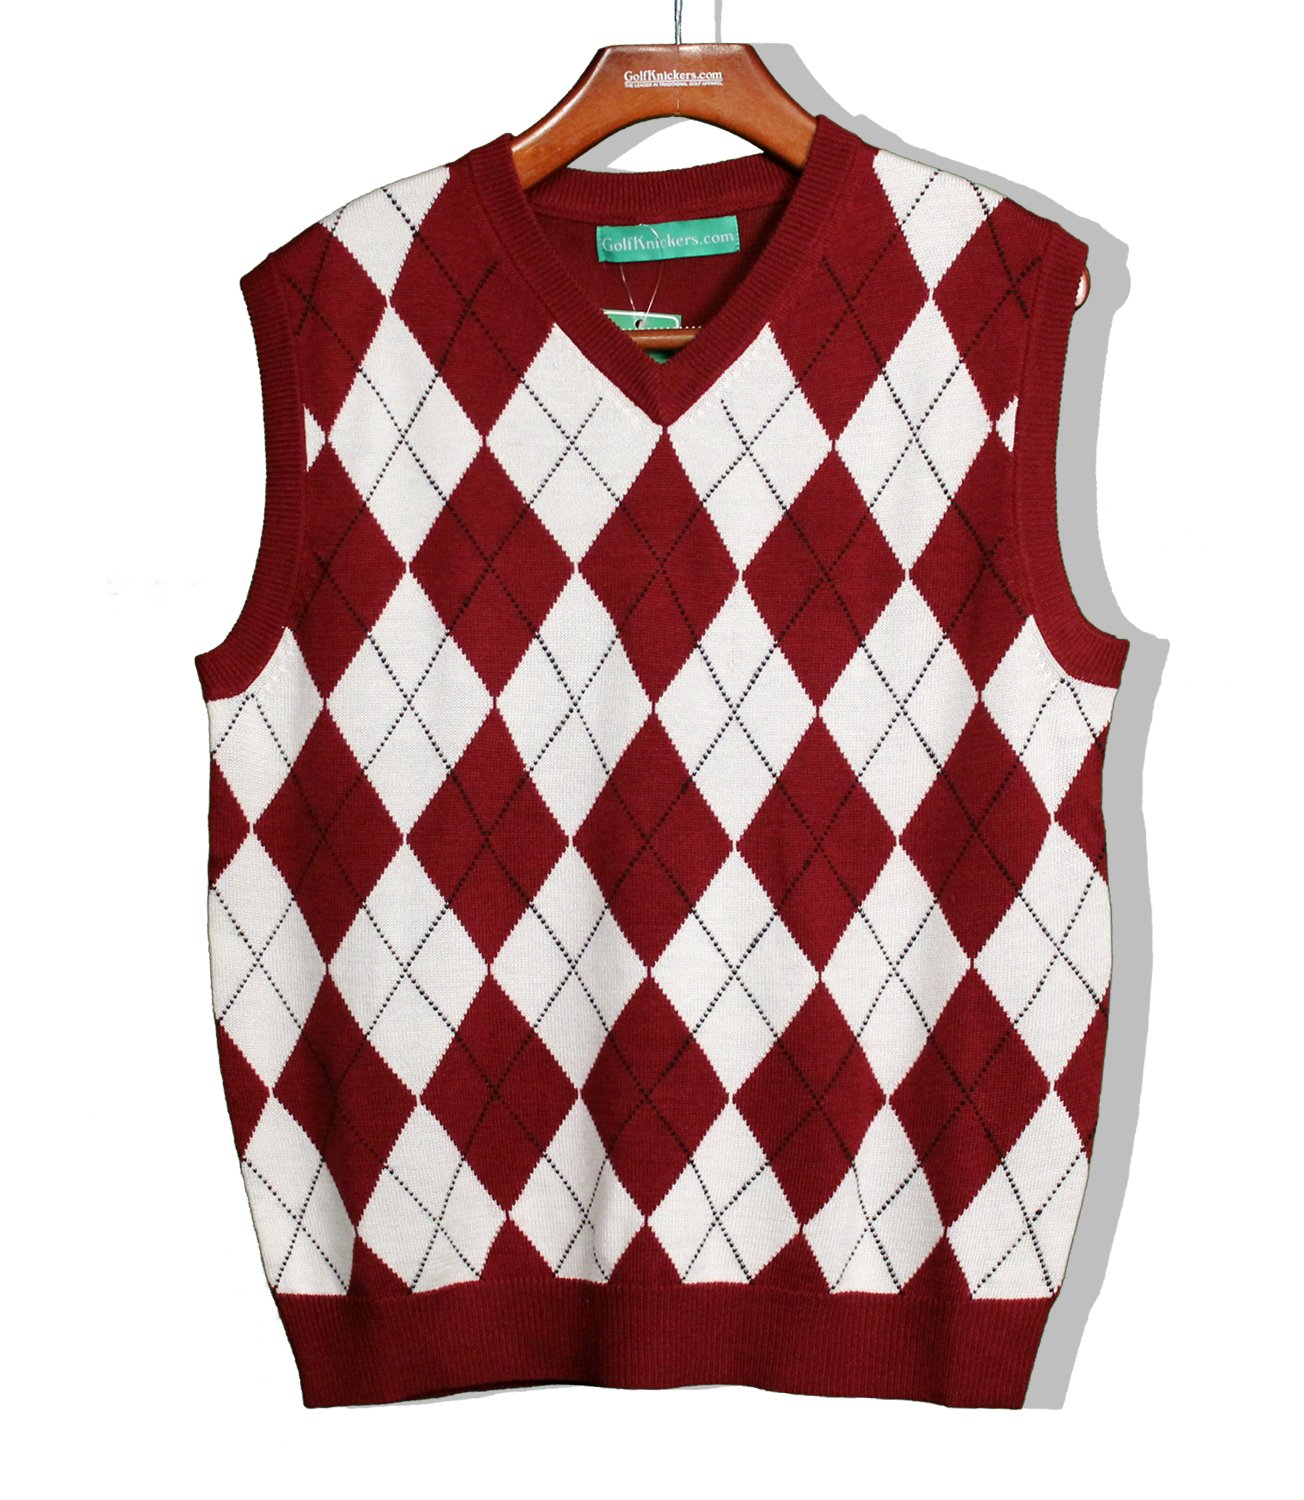 Red Argyle Sweater Vest Argyle Sweater Vest Mens